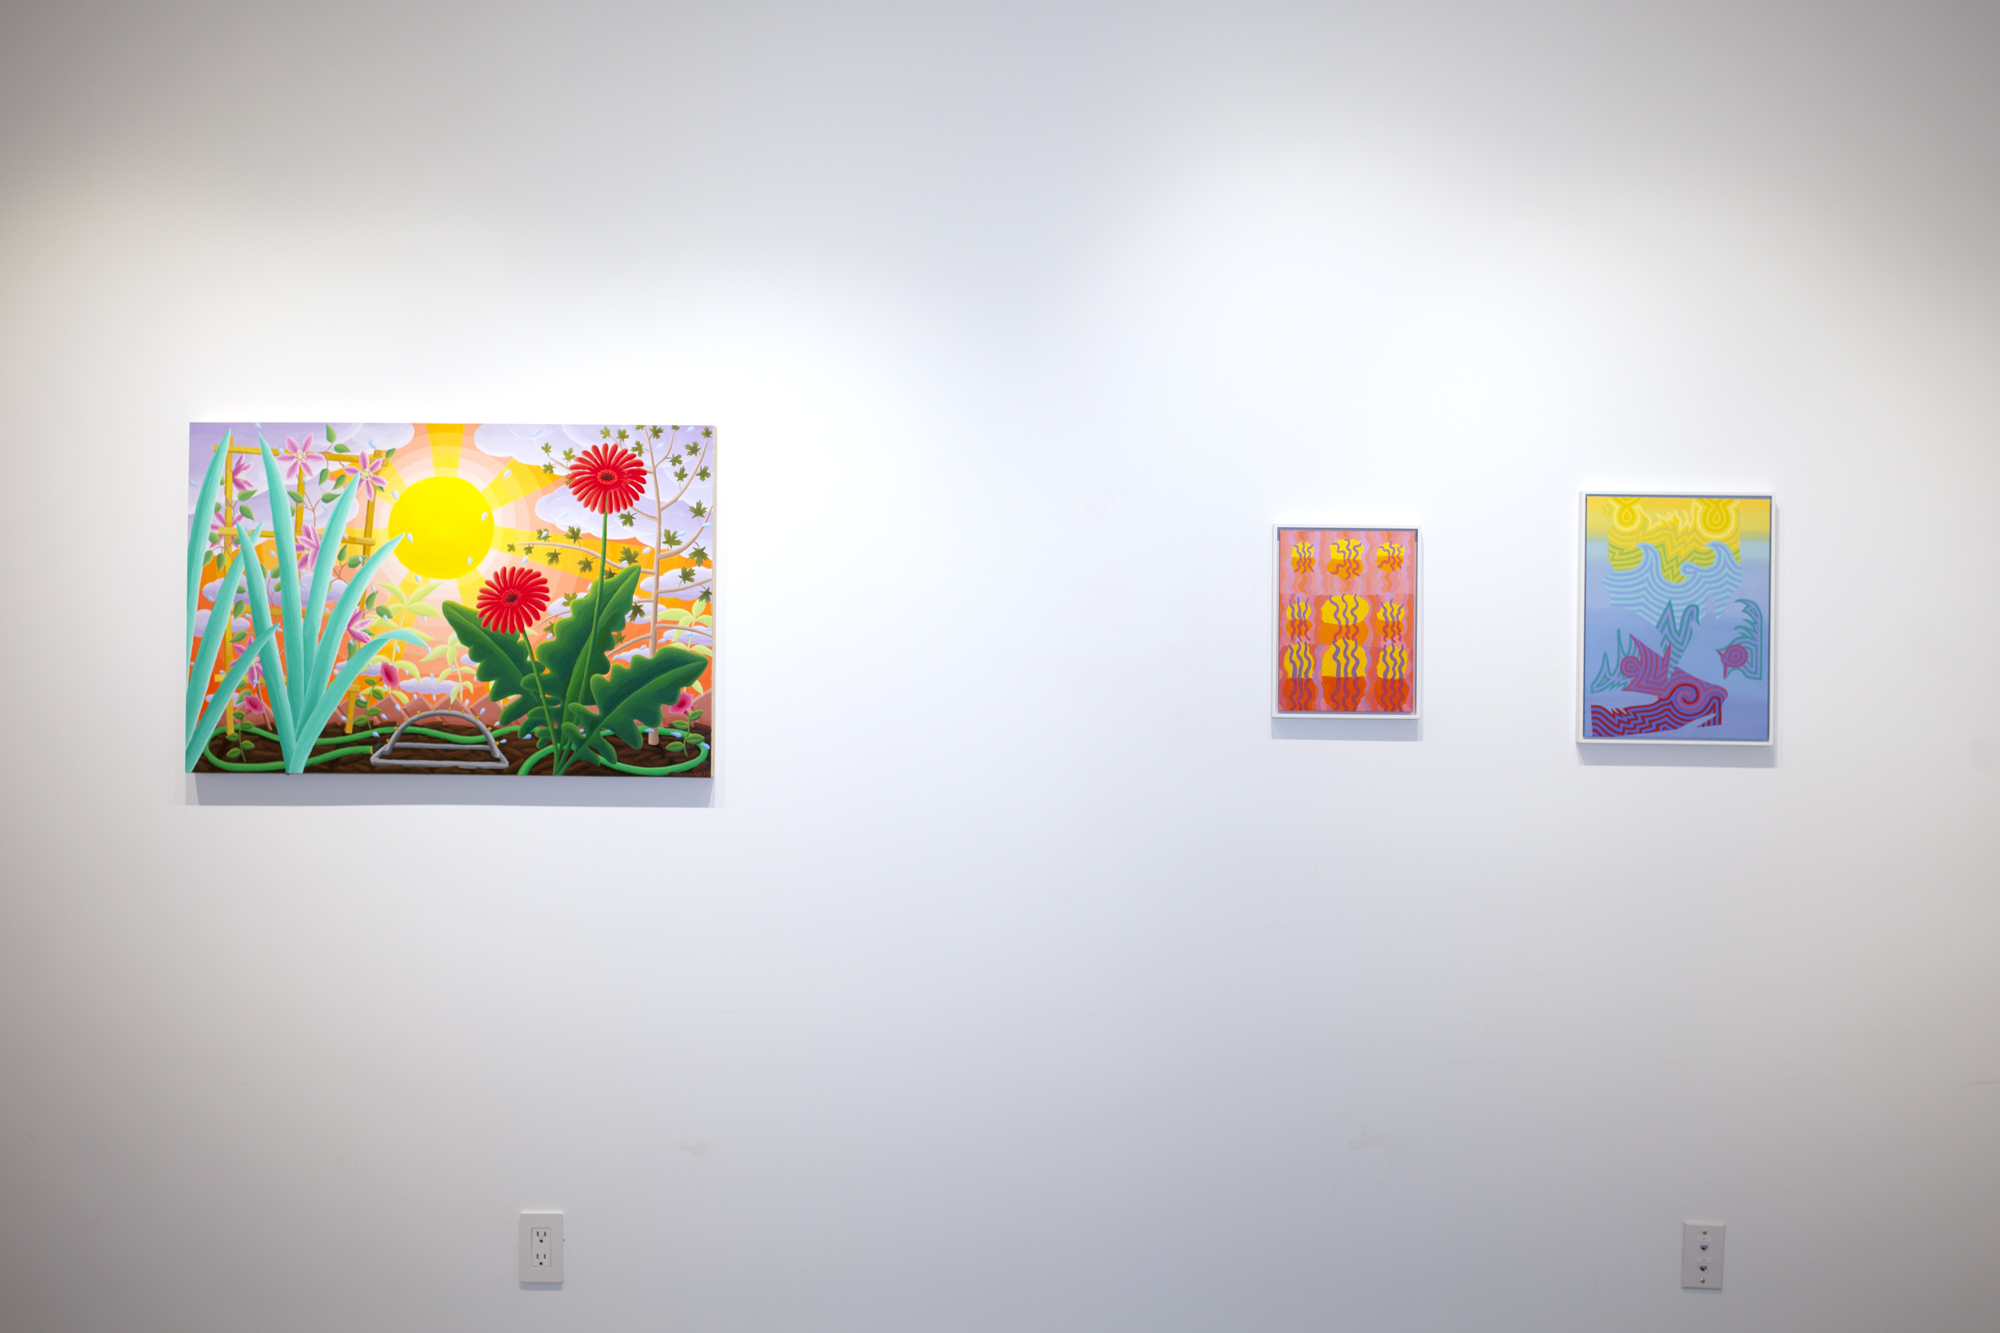 Left to right:  Amy Lincoln,  Sprinkler , 2018, acrylic on panel, 24 x 36 inches Caetlynn Booth,  Swamp Wiggle Study , 2017, oil on paper, 13 x 10 inches framed Caetlynn Booth,  Sunrise Study 5 , 2019, oil on paper, 17 x 13 inches framed